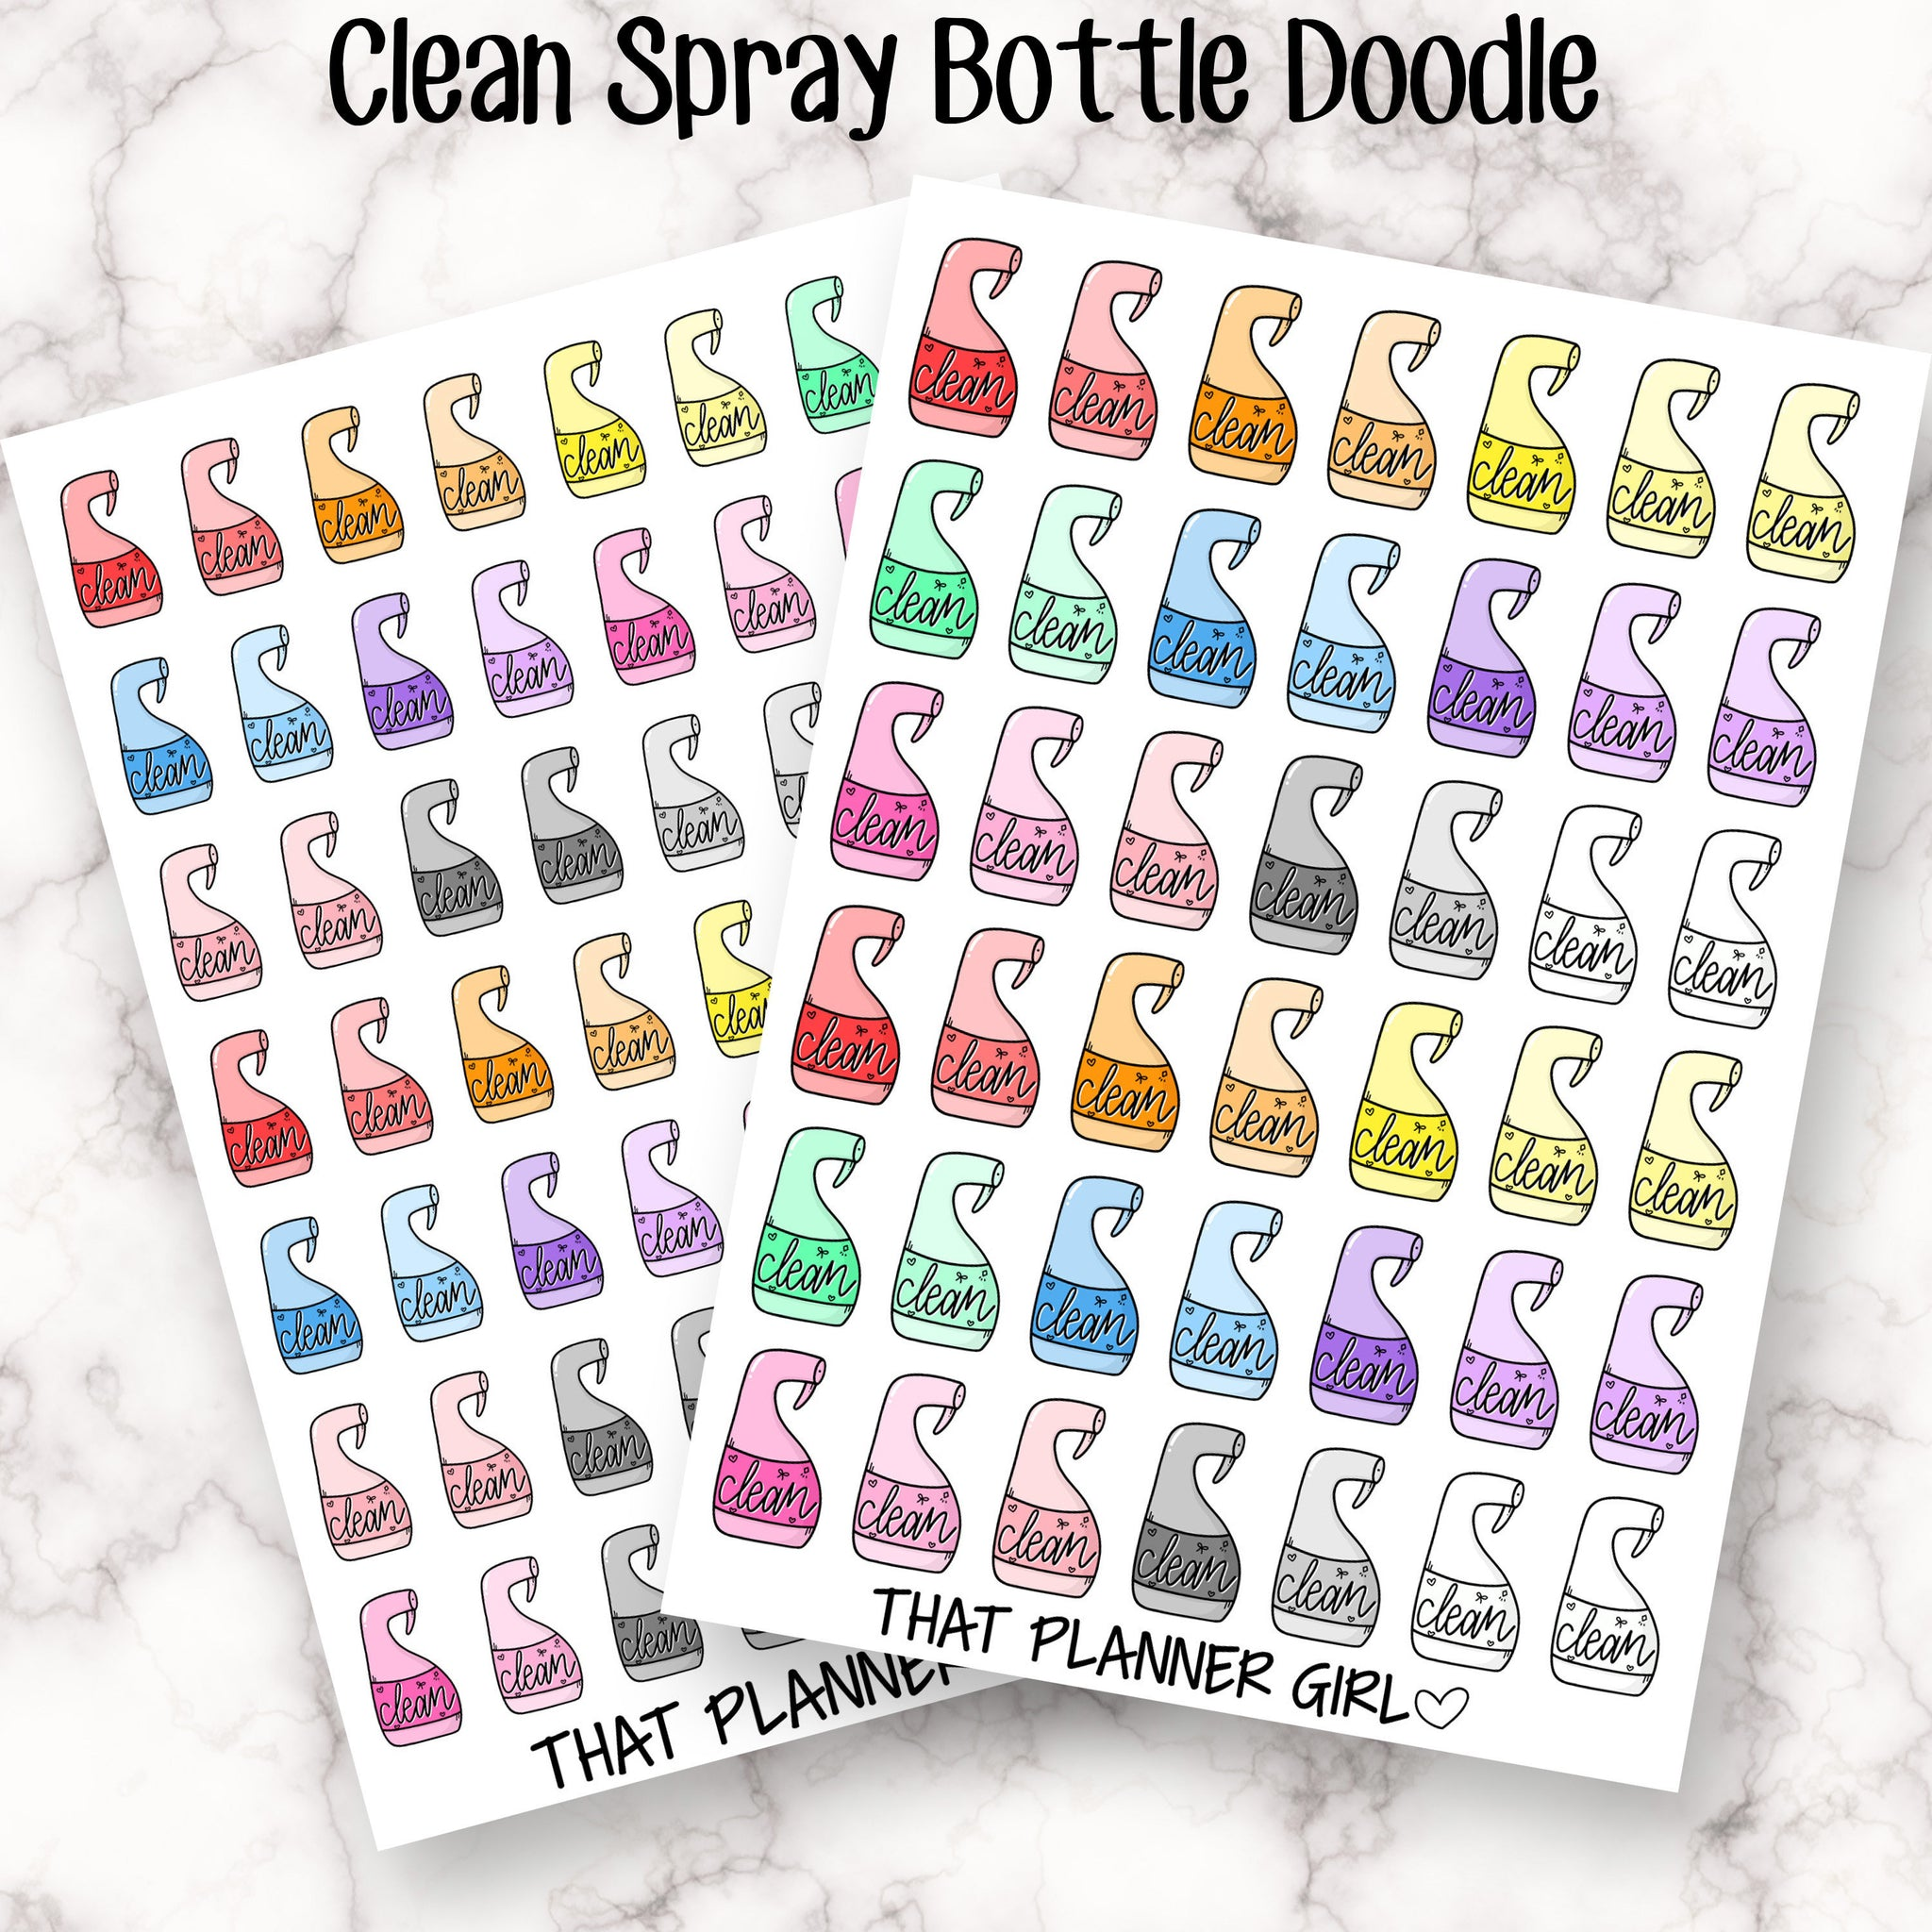 Doodle Spray Bottle Sticker